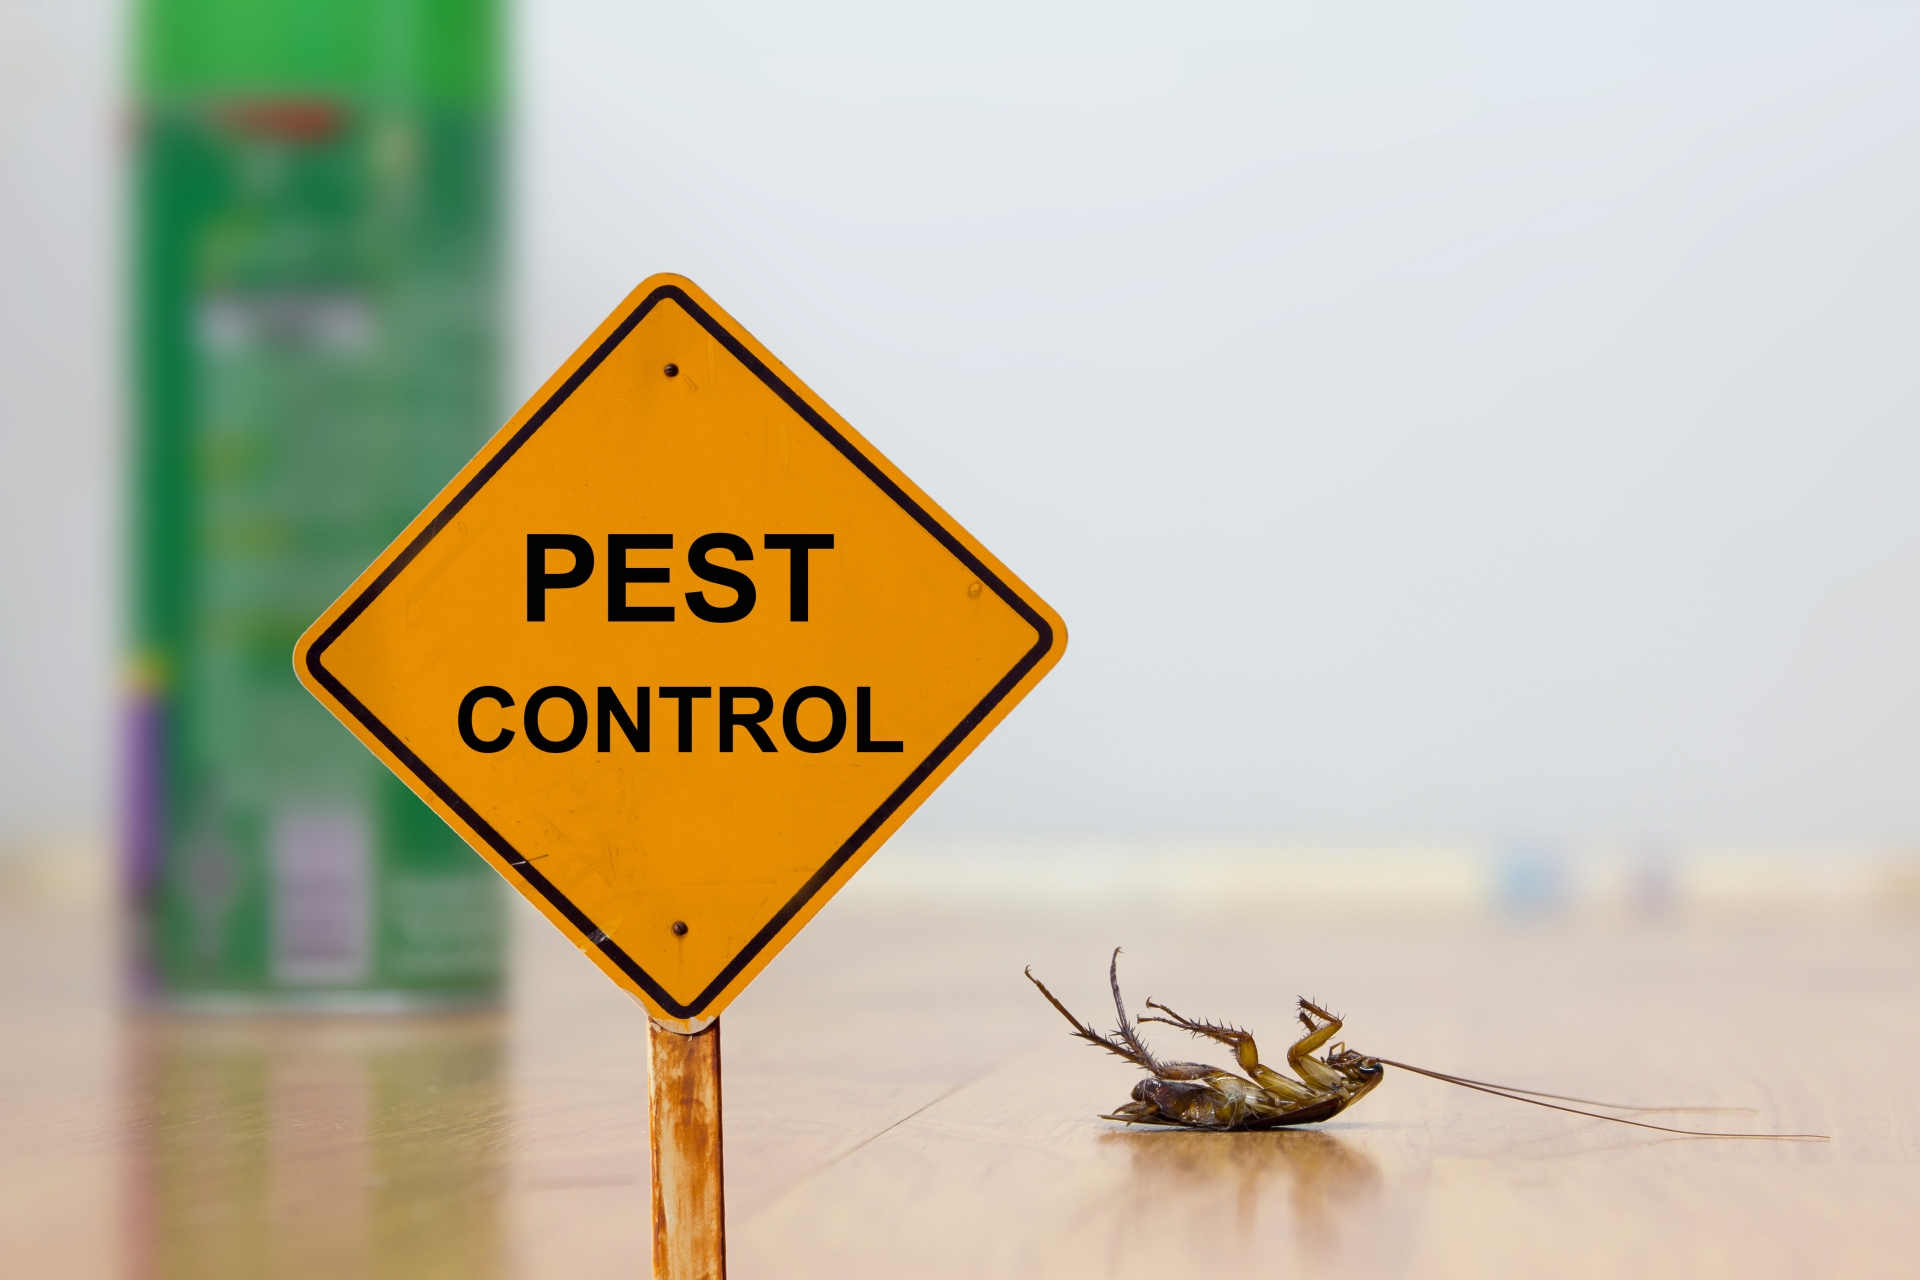 24 Hour Pest Control, Pest Control in Hither Green, SE13. Call Now 020 8166 9746